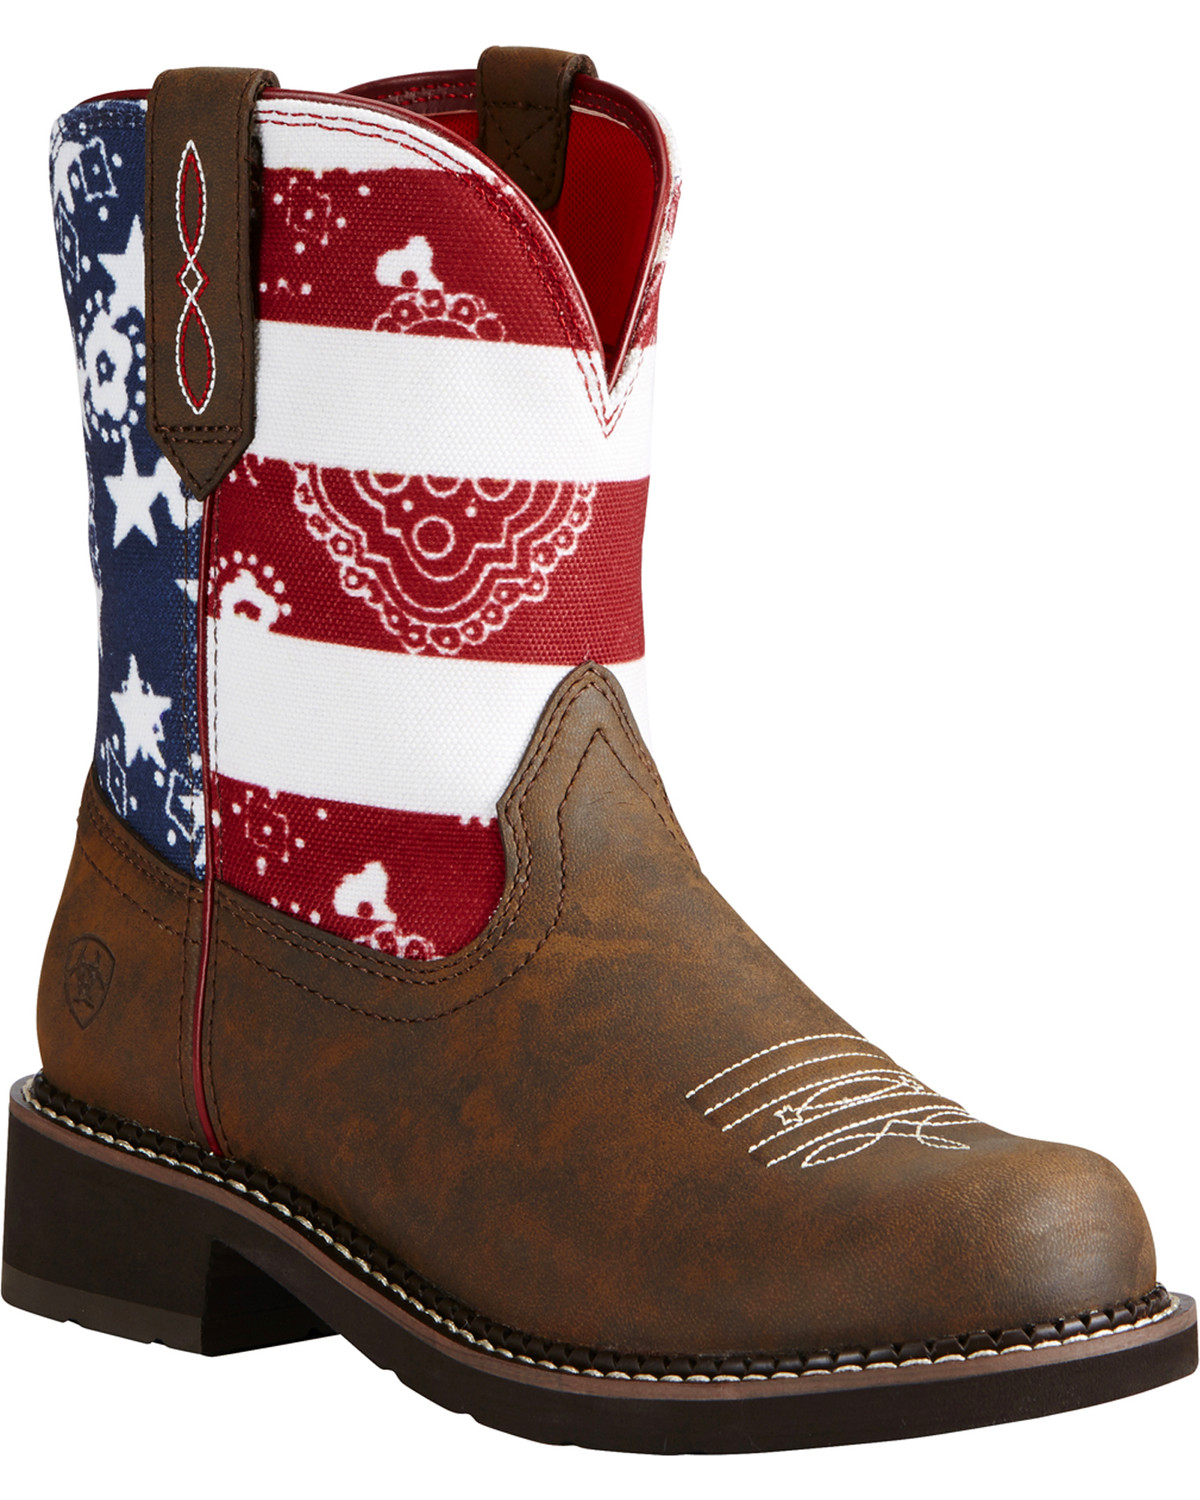 cc61d67b28695 Ariat Women's Fatbaby Old Glory Heritage Western Boots